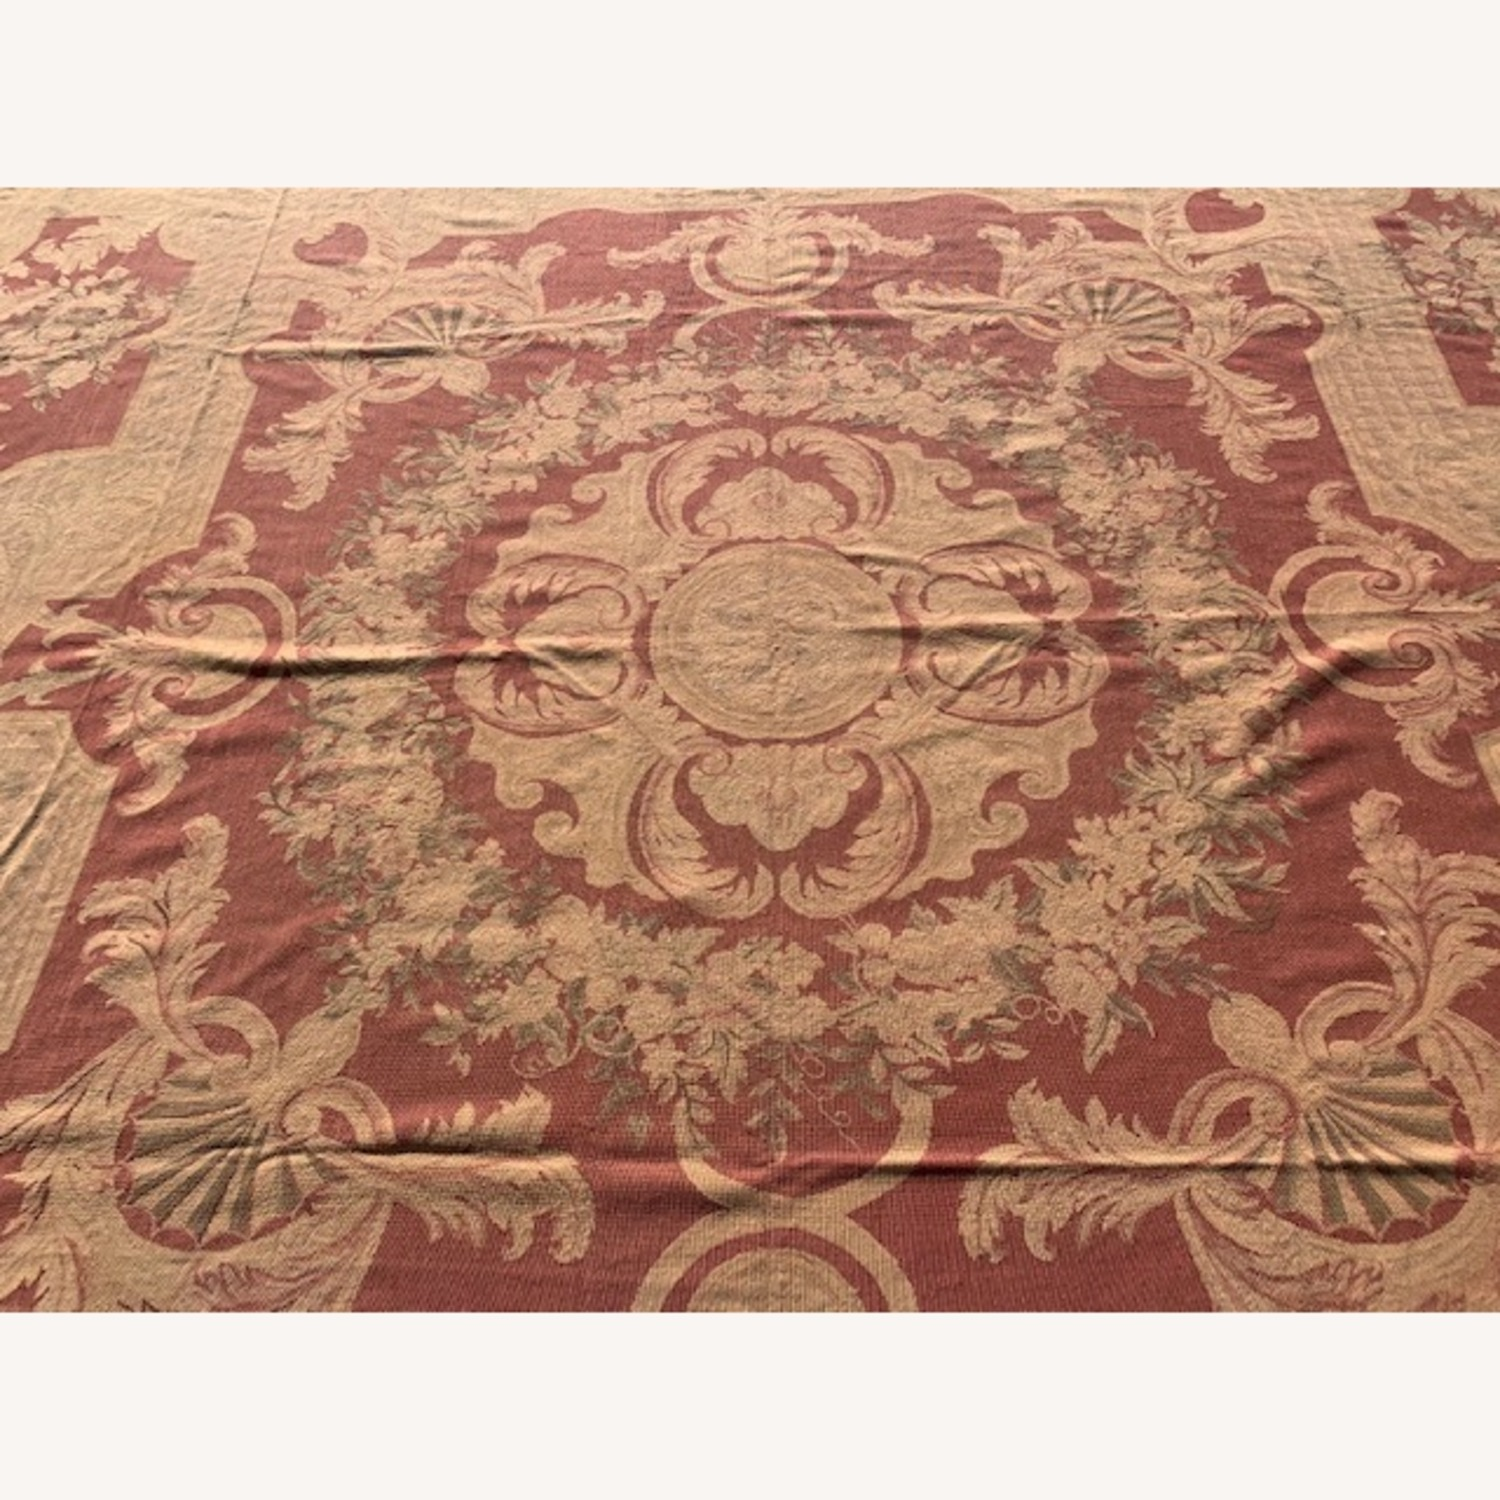 Vintage Aubusson flat weave Red and Tan rug - image-3